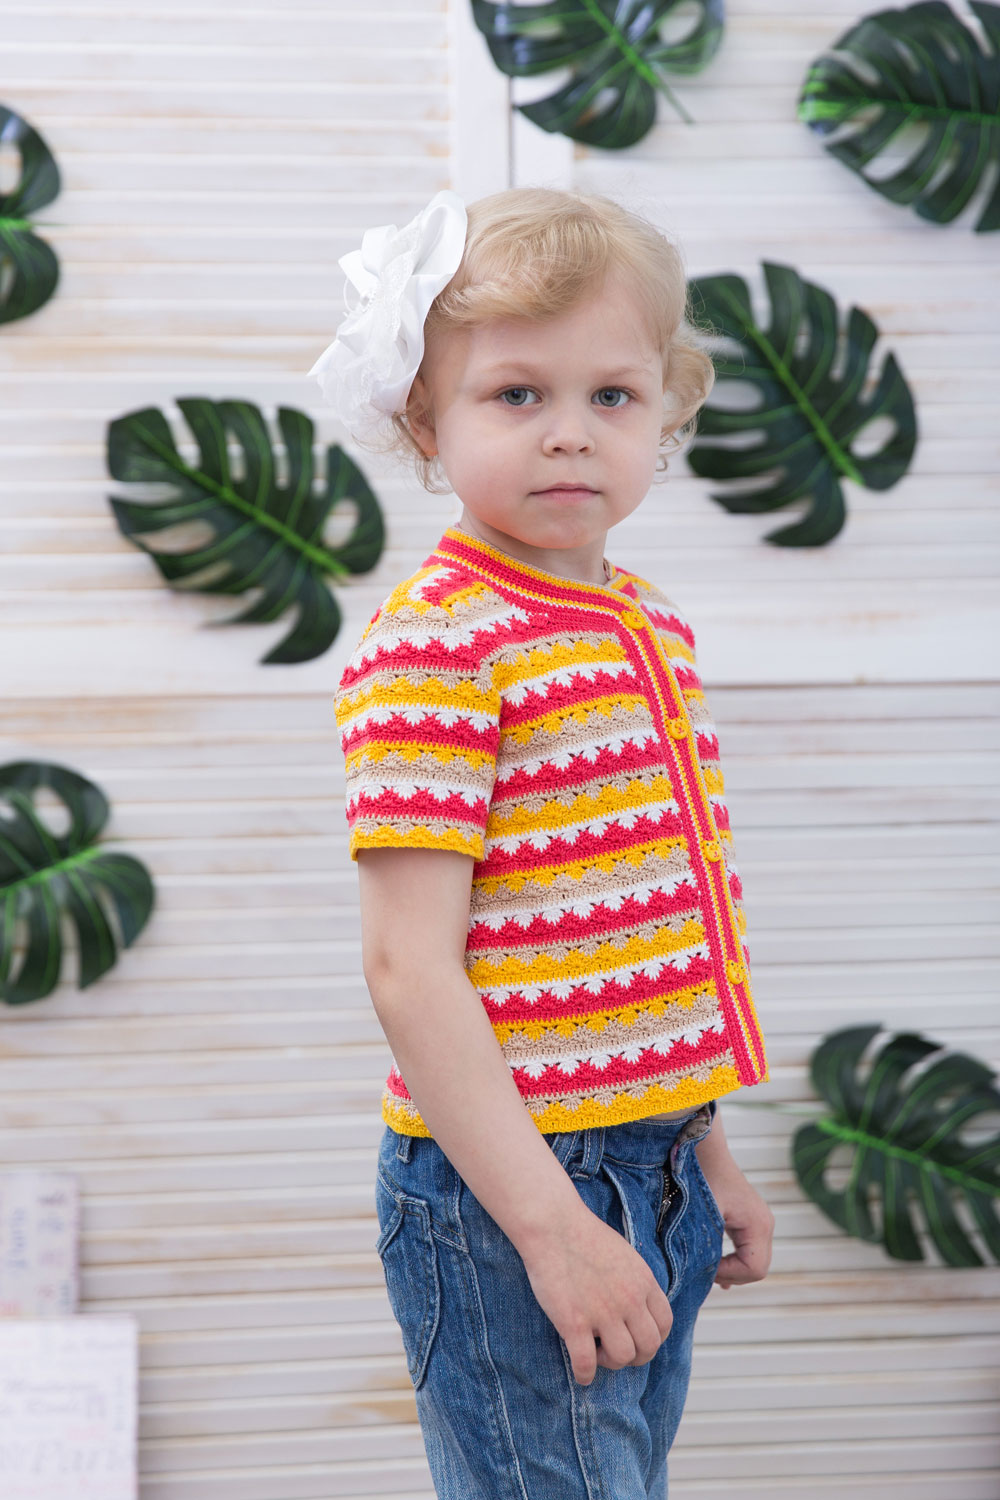 ef1beeb2056 Make a very bright and exiting summer garment for your child using this  colorful pattern. It s perfect for your little one to wear on any occasion.